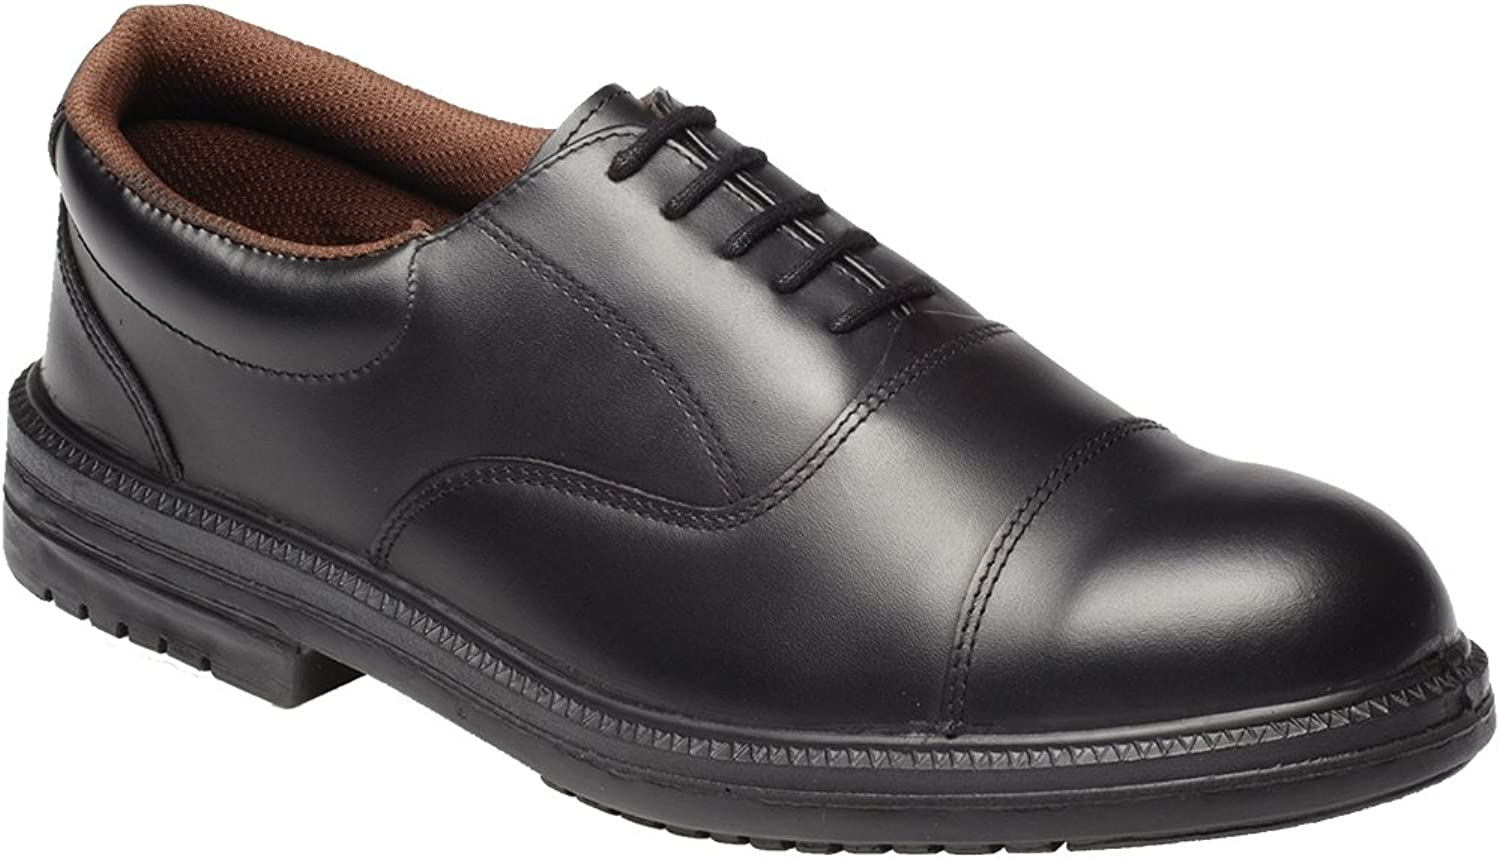 Dickies Mens Water Resistant Oxford Safety shoes Size 6 UK